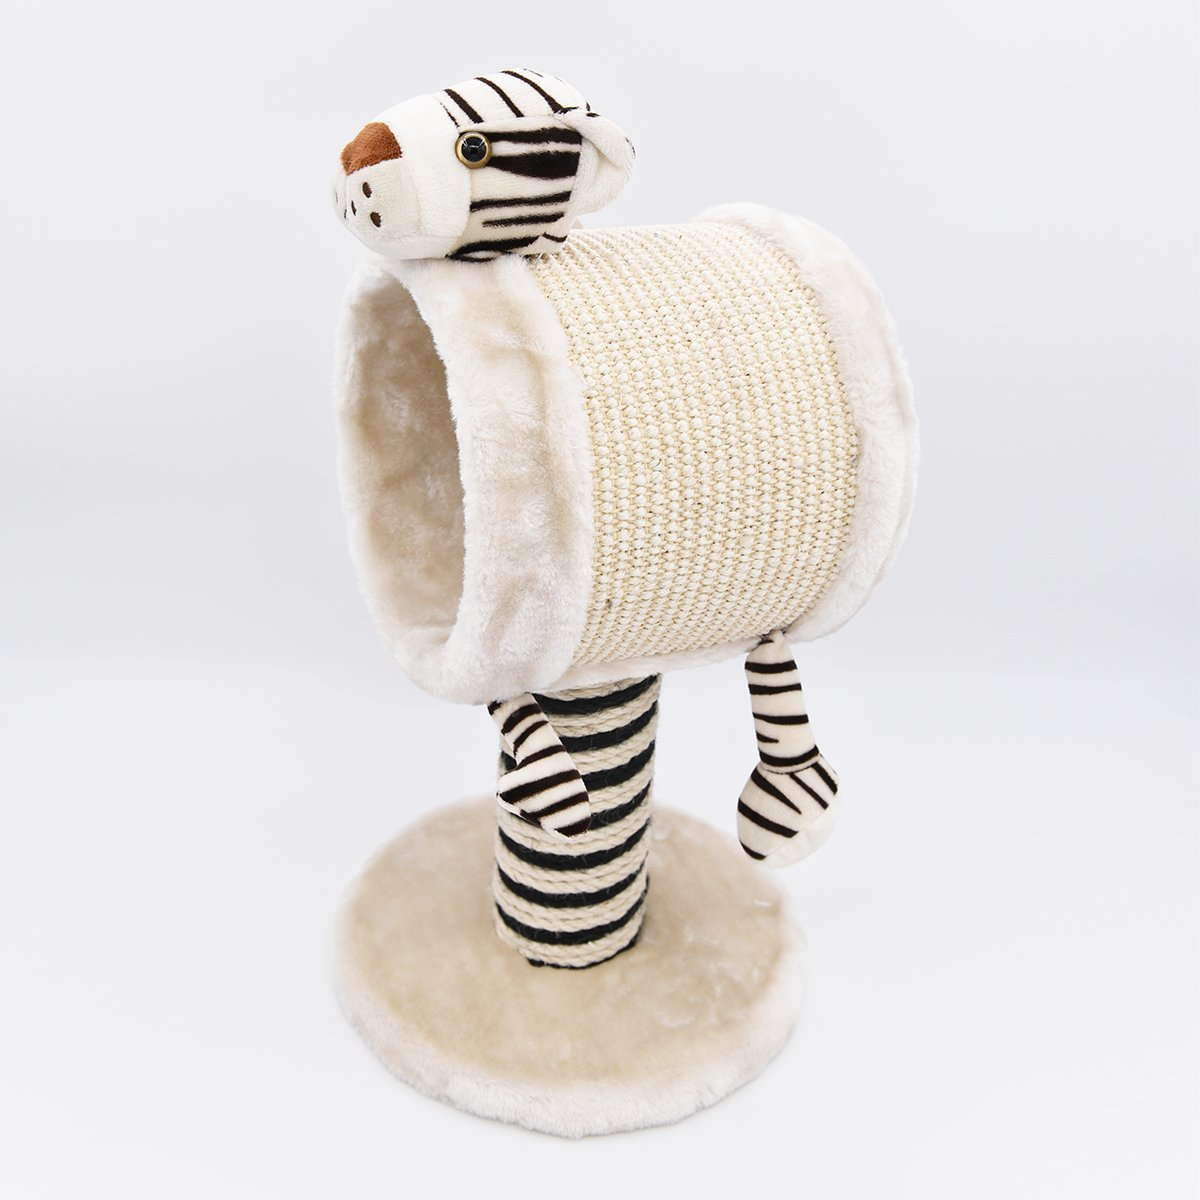 MorePets] Zoo Buddies Kitten Small Cat Tree Scratching Post Compact Size Toys (Tiger, Medium)